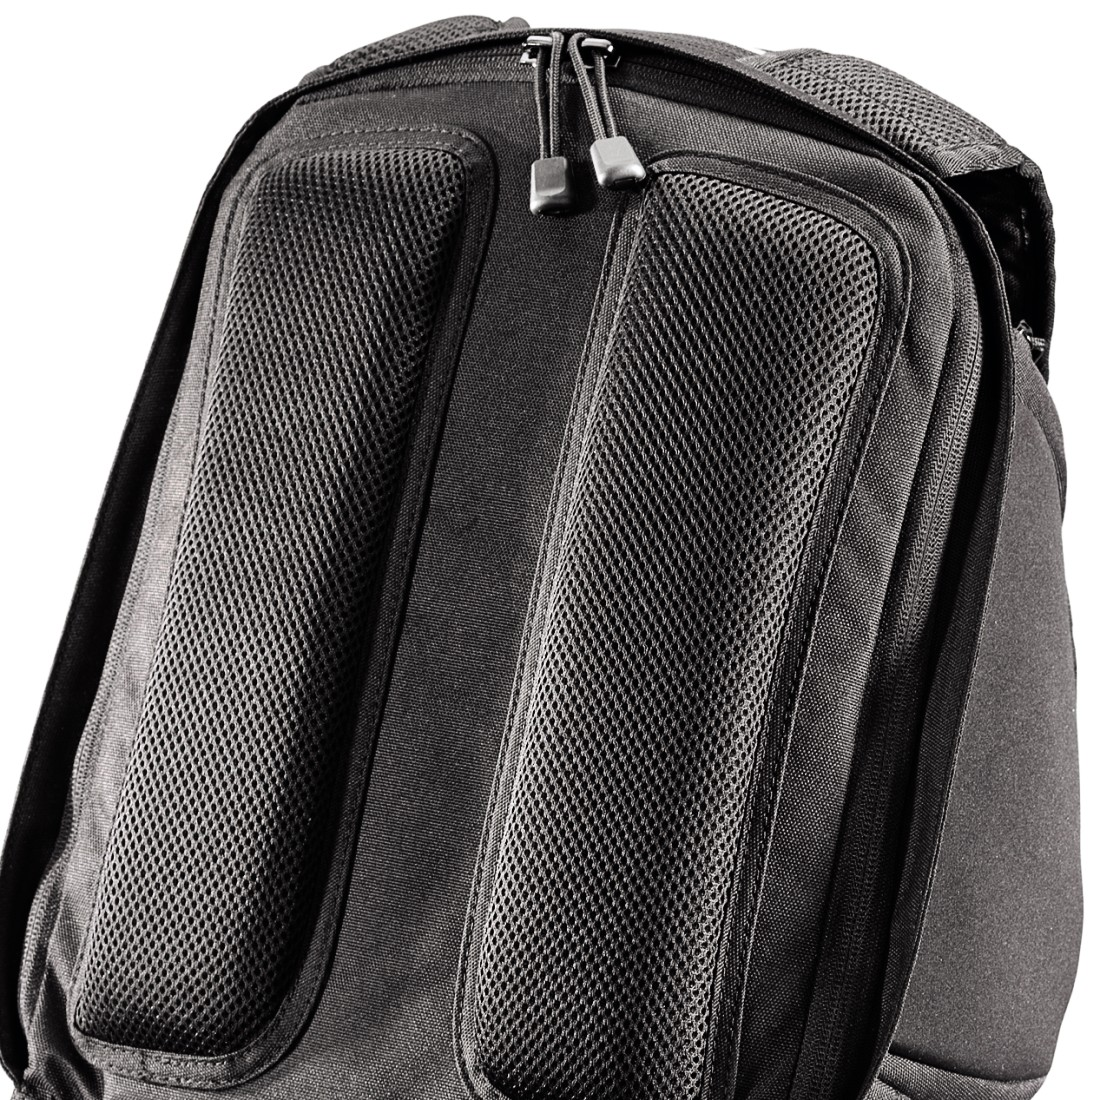 dex2 High-Res Detail 2 - Hama, Daytour Camera Backpack, 180, black